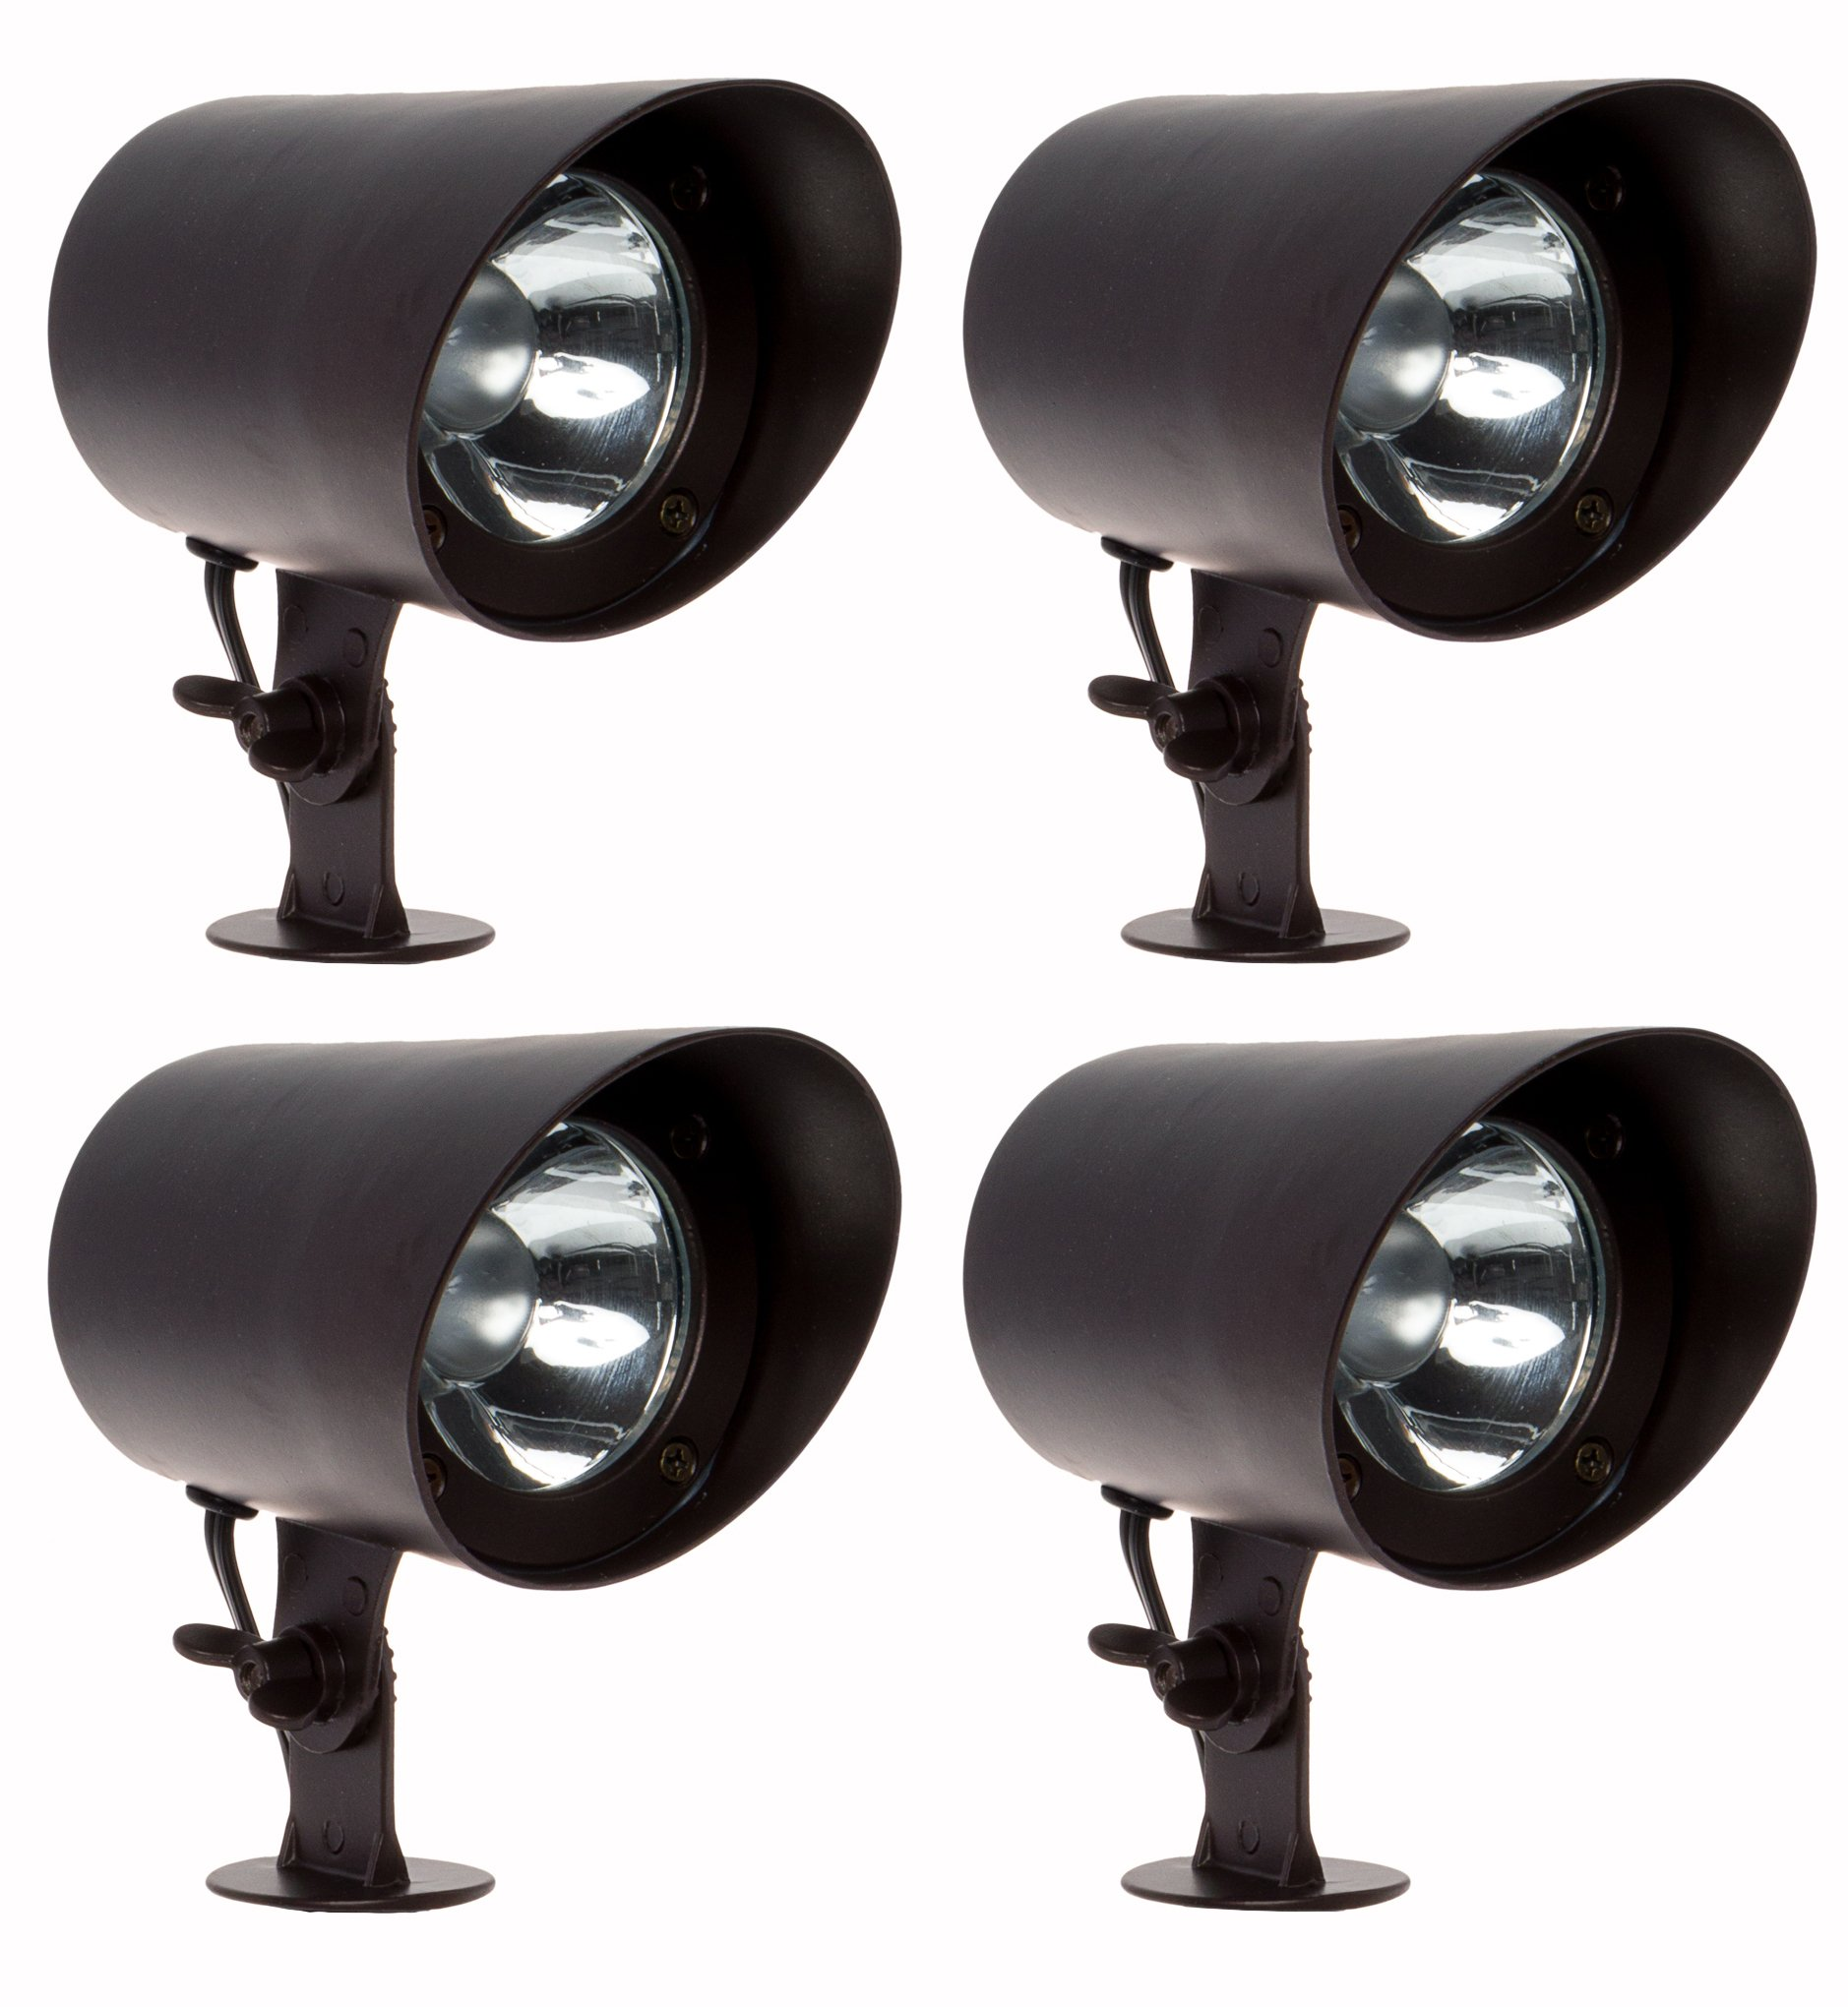 GreenLighting 4 Pack 100 Lumen Aluminum Low Voltage Outdoor Spotlight (Bronze)